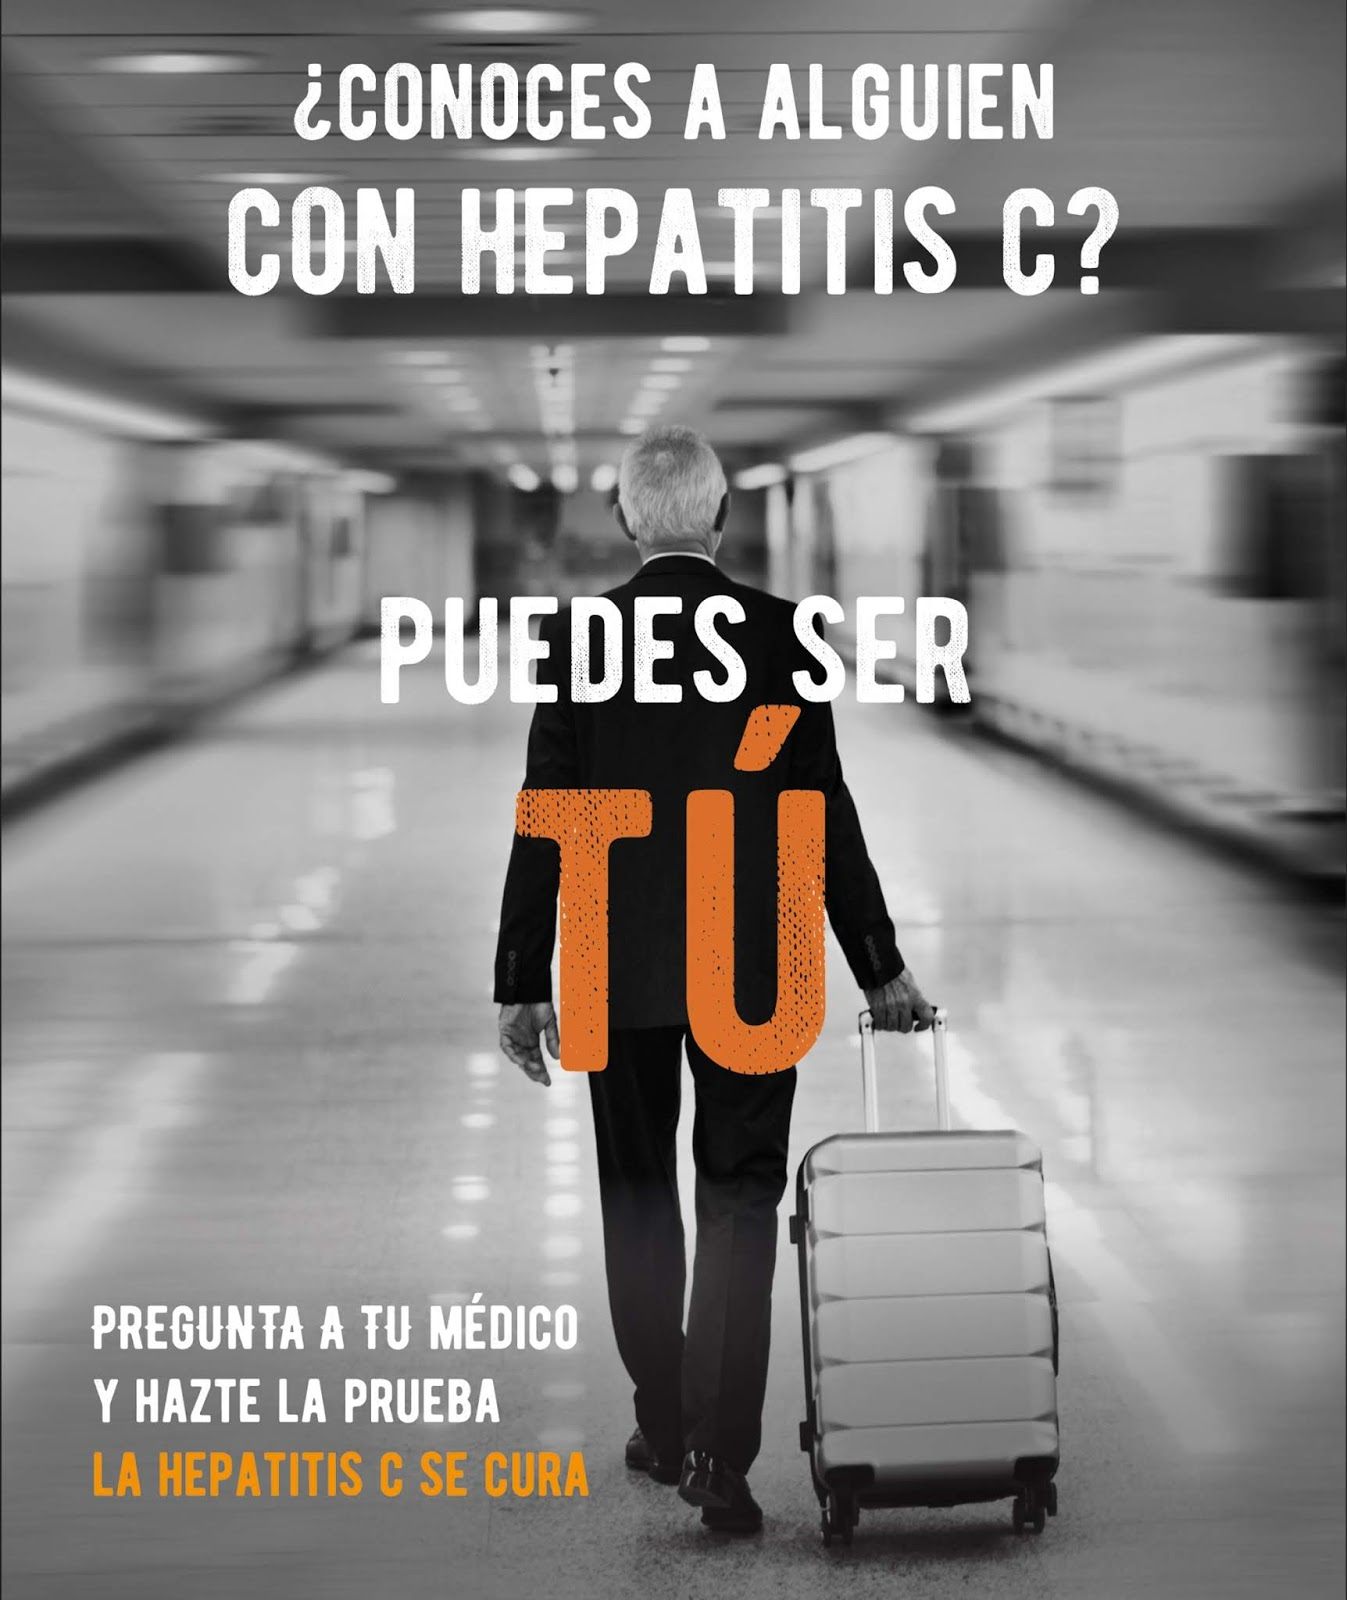 Hepatitis a preciosa